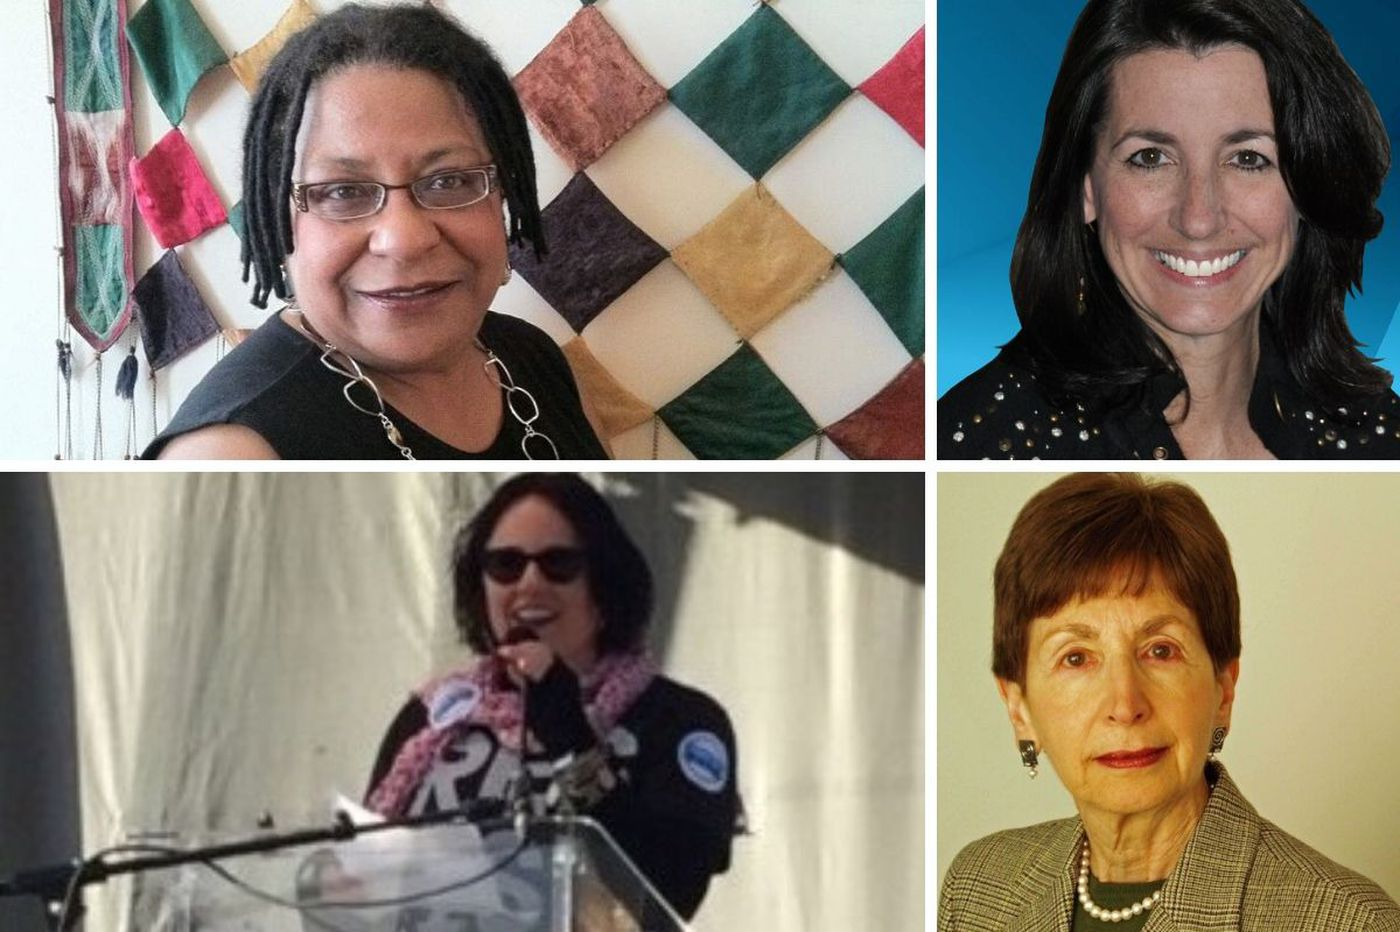 Philadelphia has 'missing men,' but we're missing women too — in the halls of power | Opinion